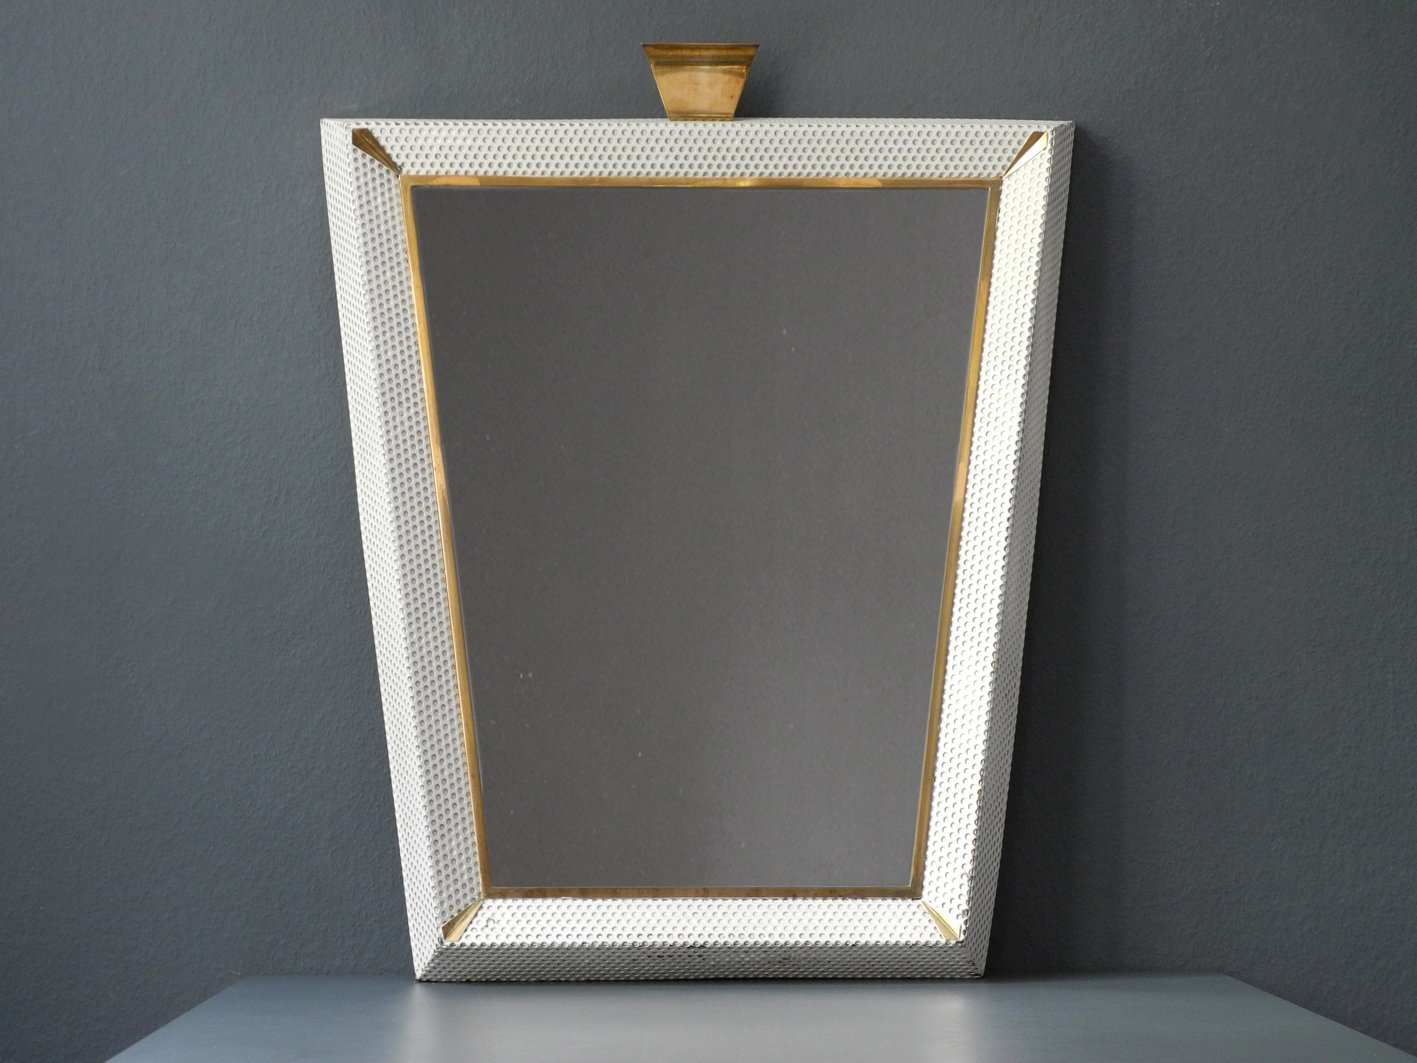 Large Mid Century Modern Illuminated Mirror With Perforated Metal Frame And Br Details